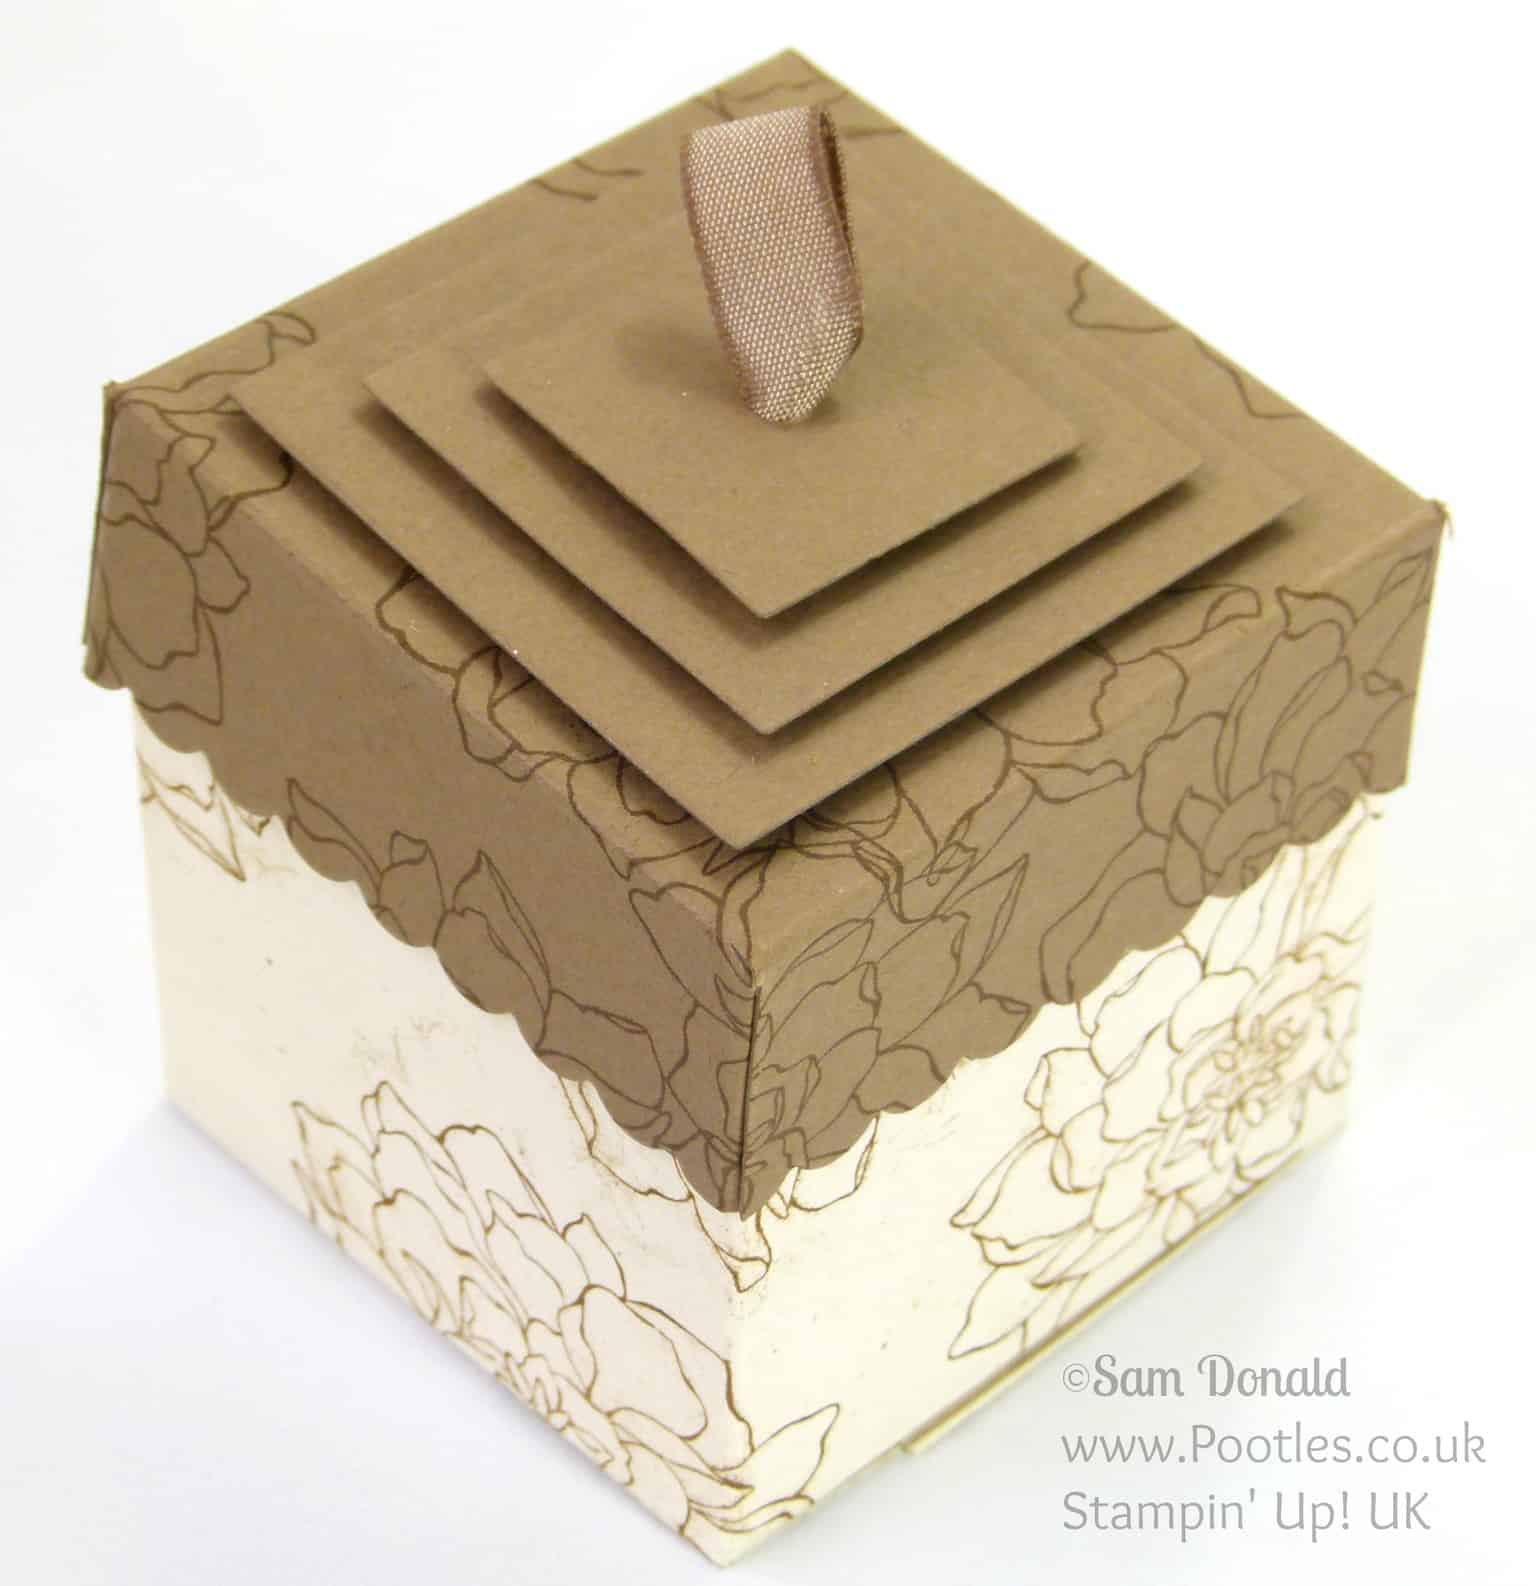 POOTLES Stampin' Up! UK Lidded Box Tutorial using ©Stampin' Up! Squares Framelits Lid Detail